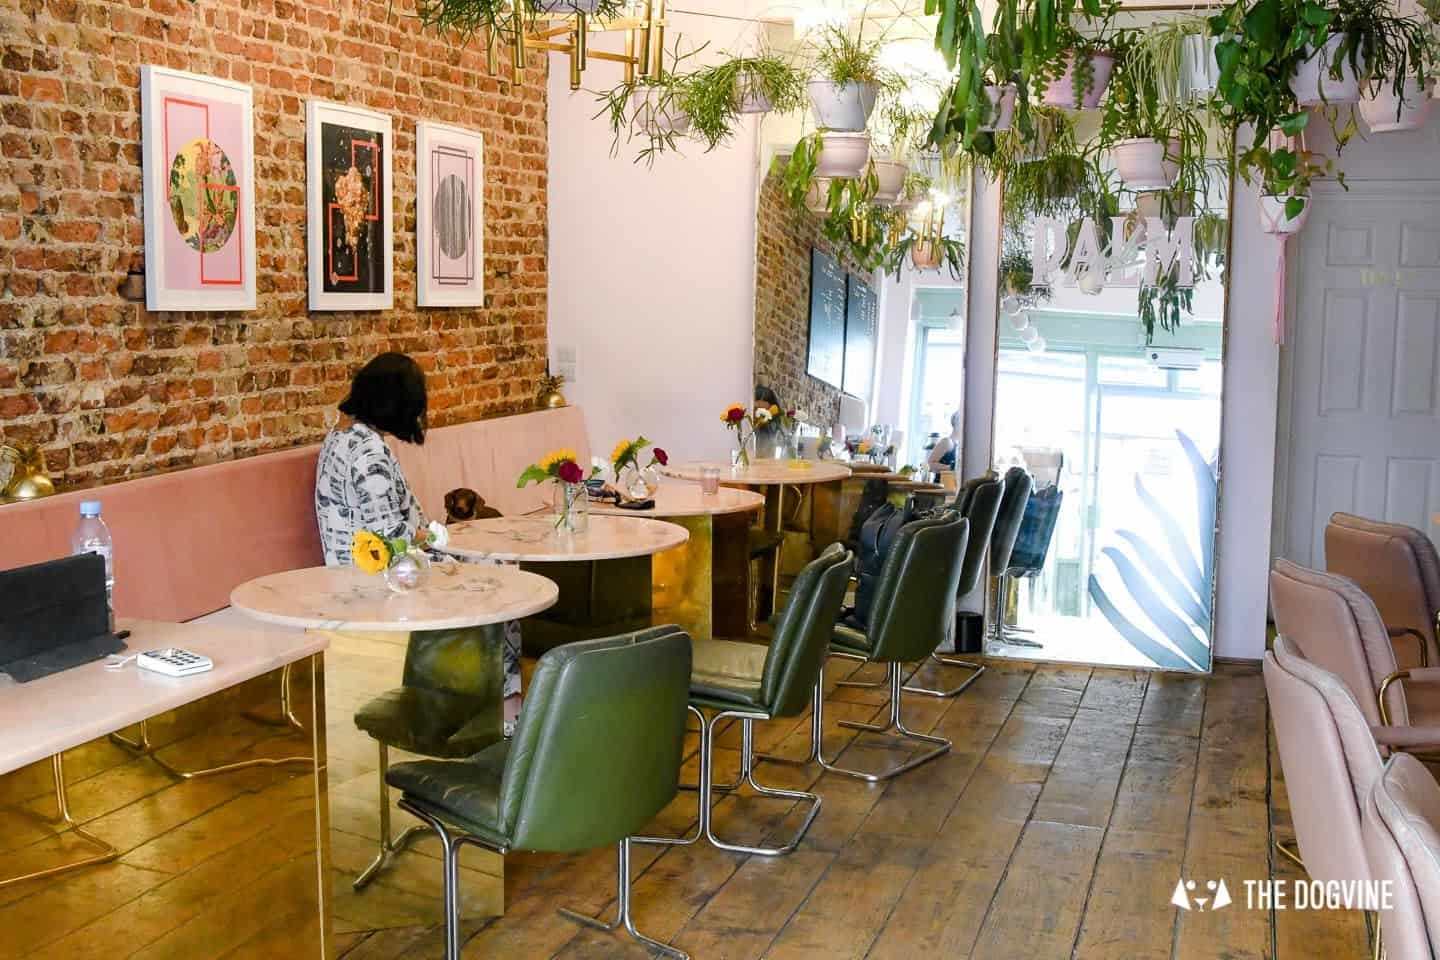 My Dog Friendly London by Pops the Sausage - Palm Vaults